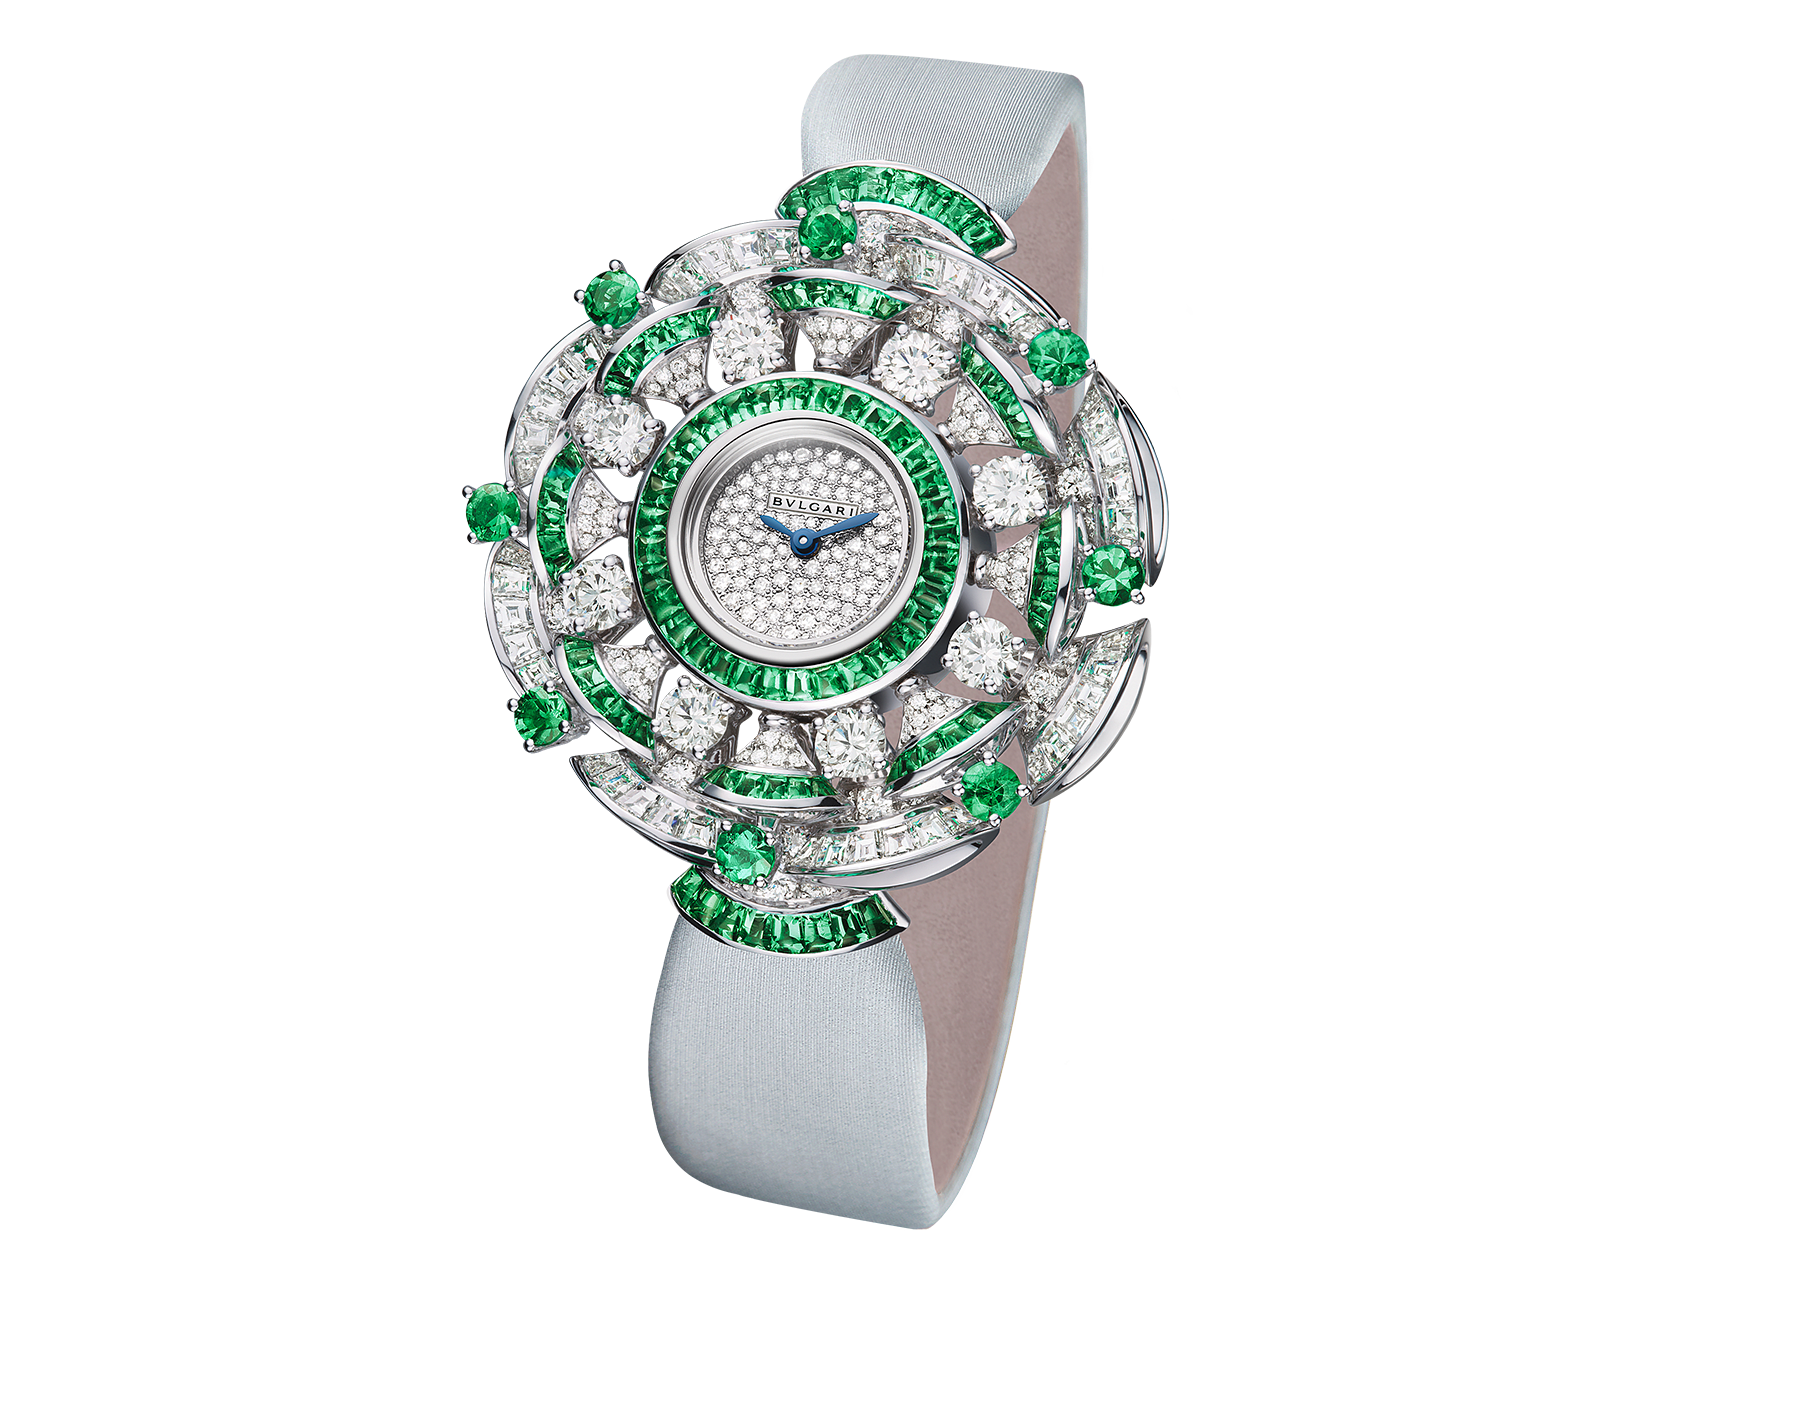 DIVAS' DREAM watch with 18 kt white gold case set with brilliant-cut diamonds and emeralds, buff-cut diamonds and emeralds, snow pavé dial and silver satin bracelet 102463 image 1